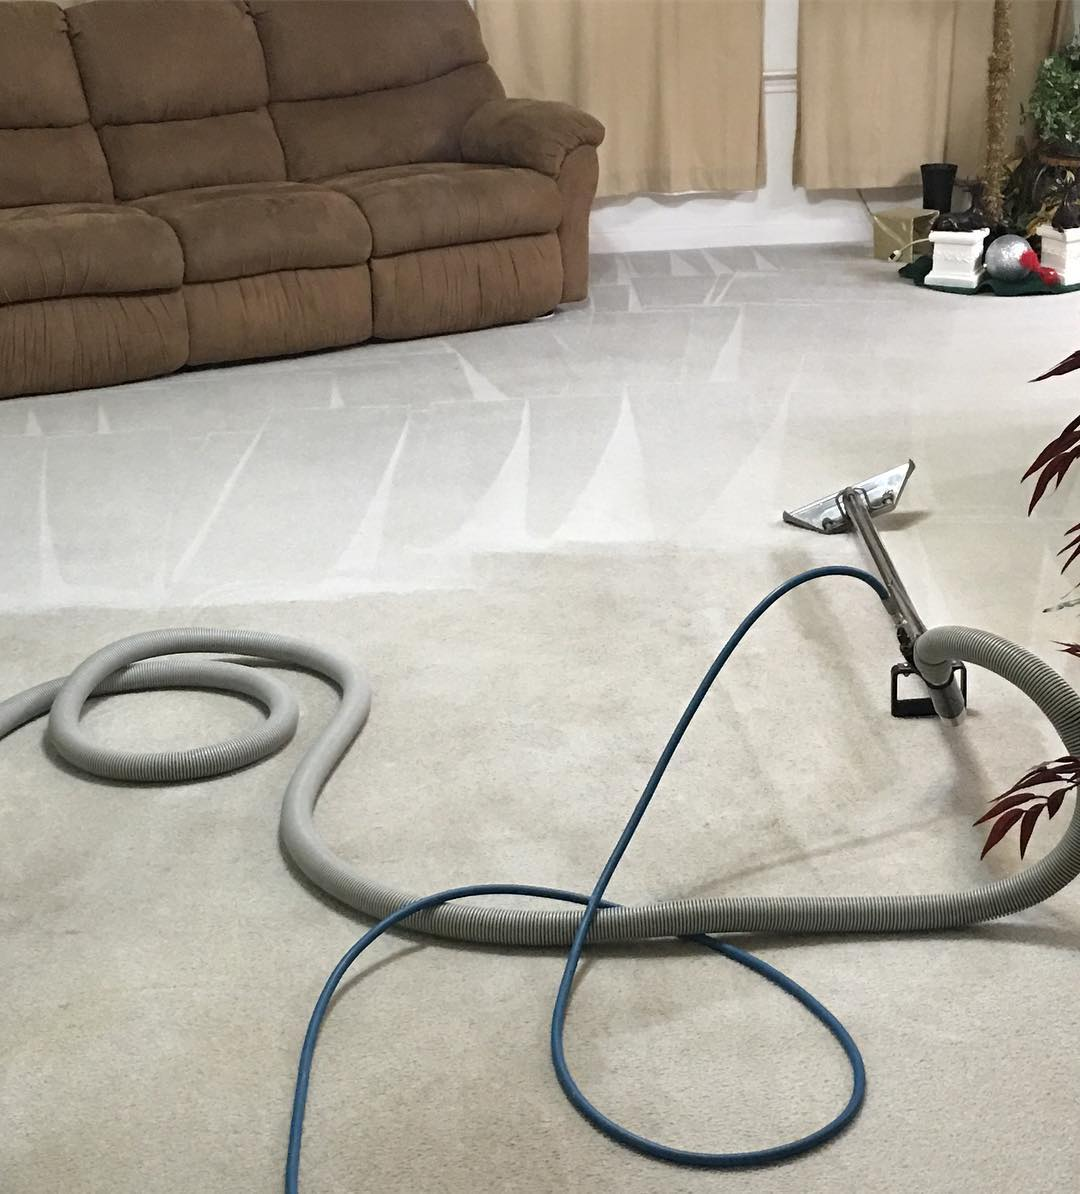 image - How to Select a Carpet Cleaning Service A Guide